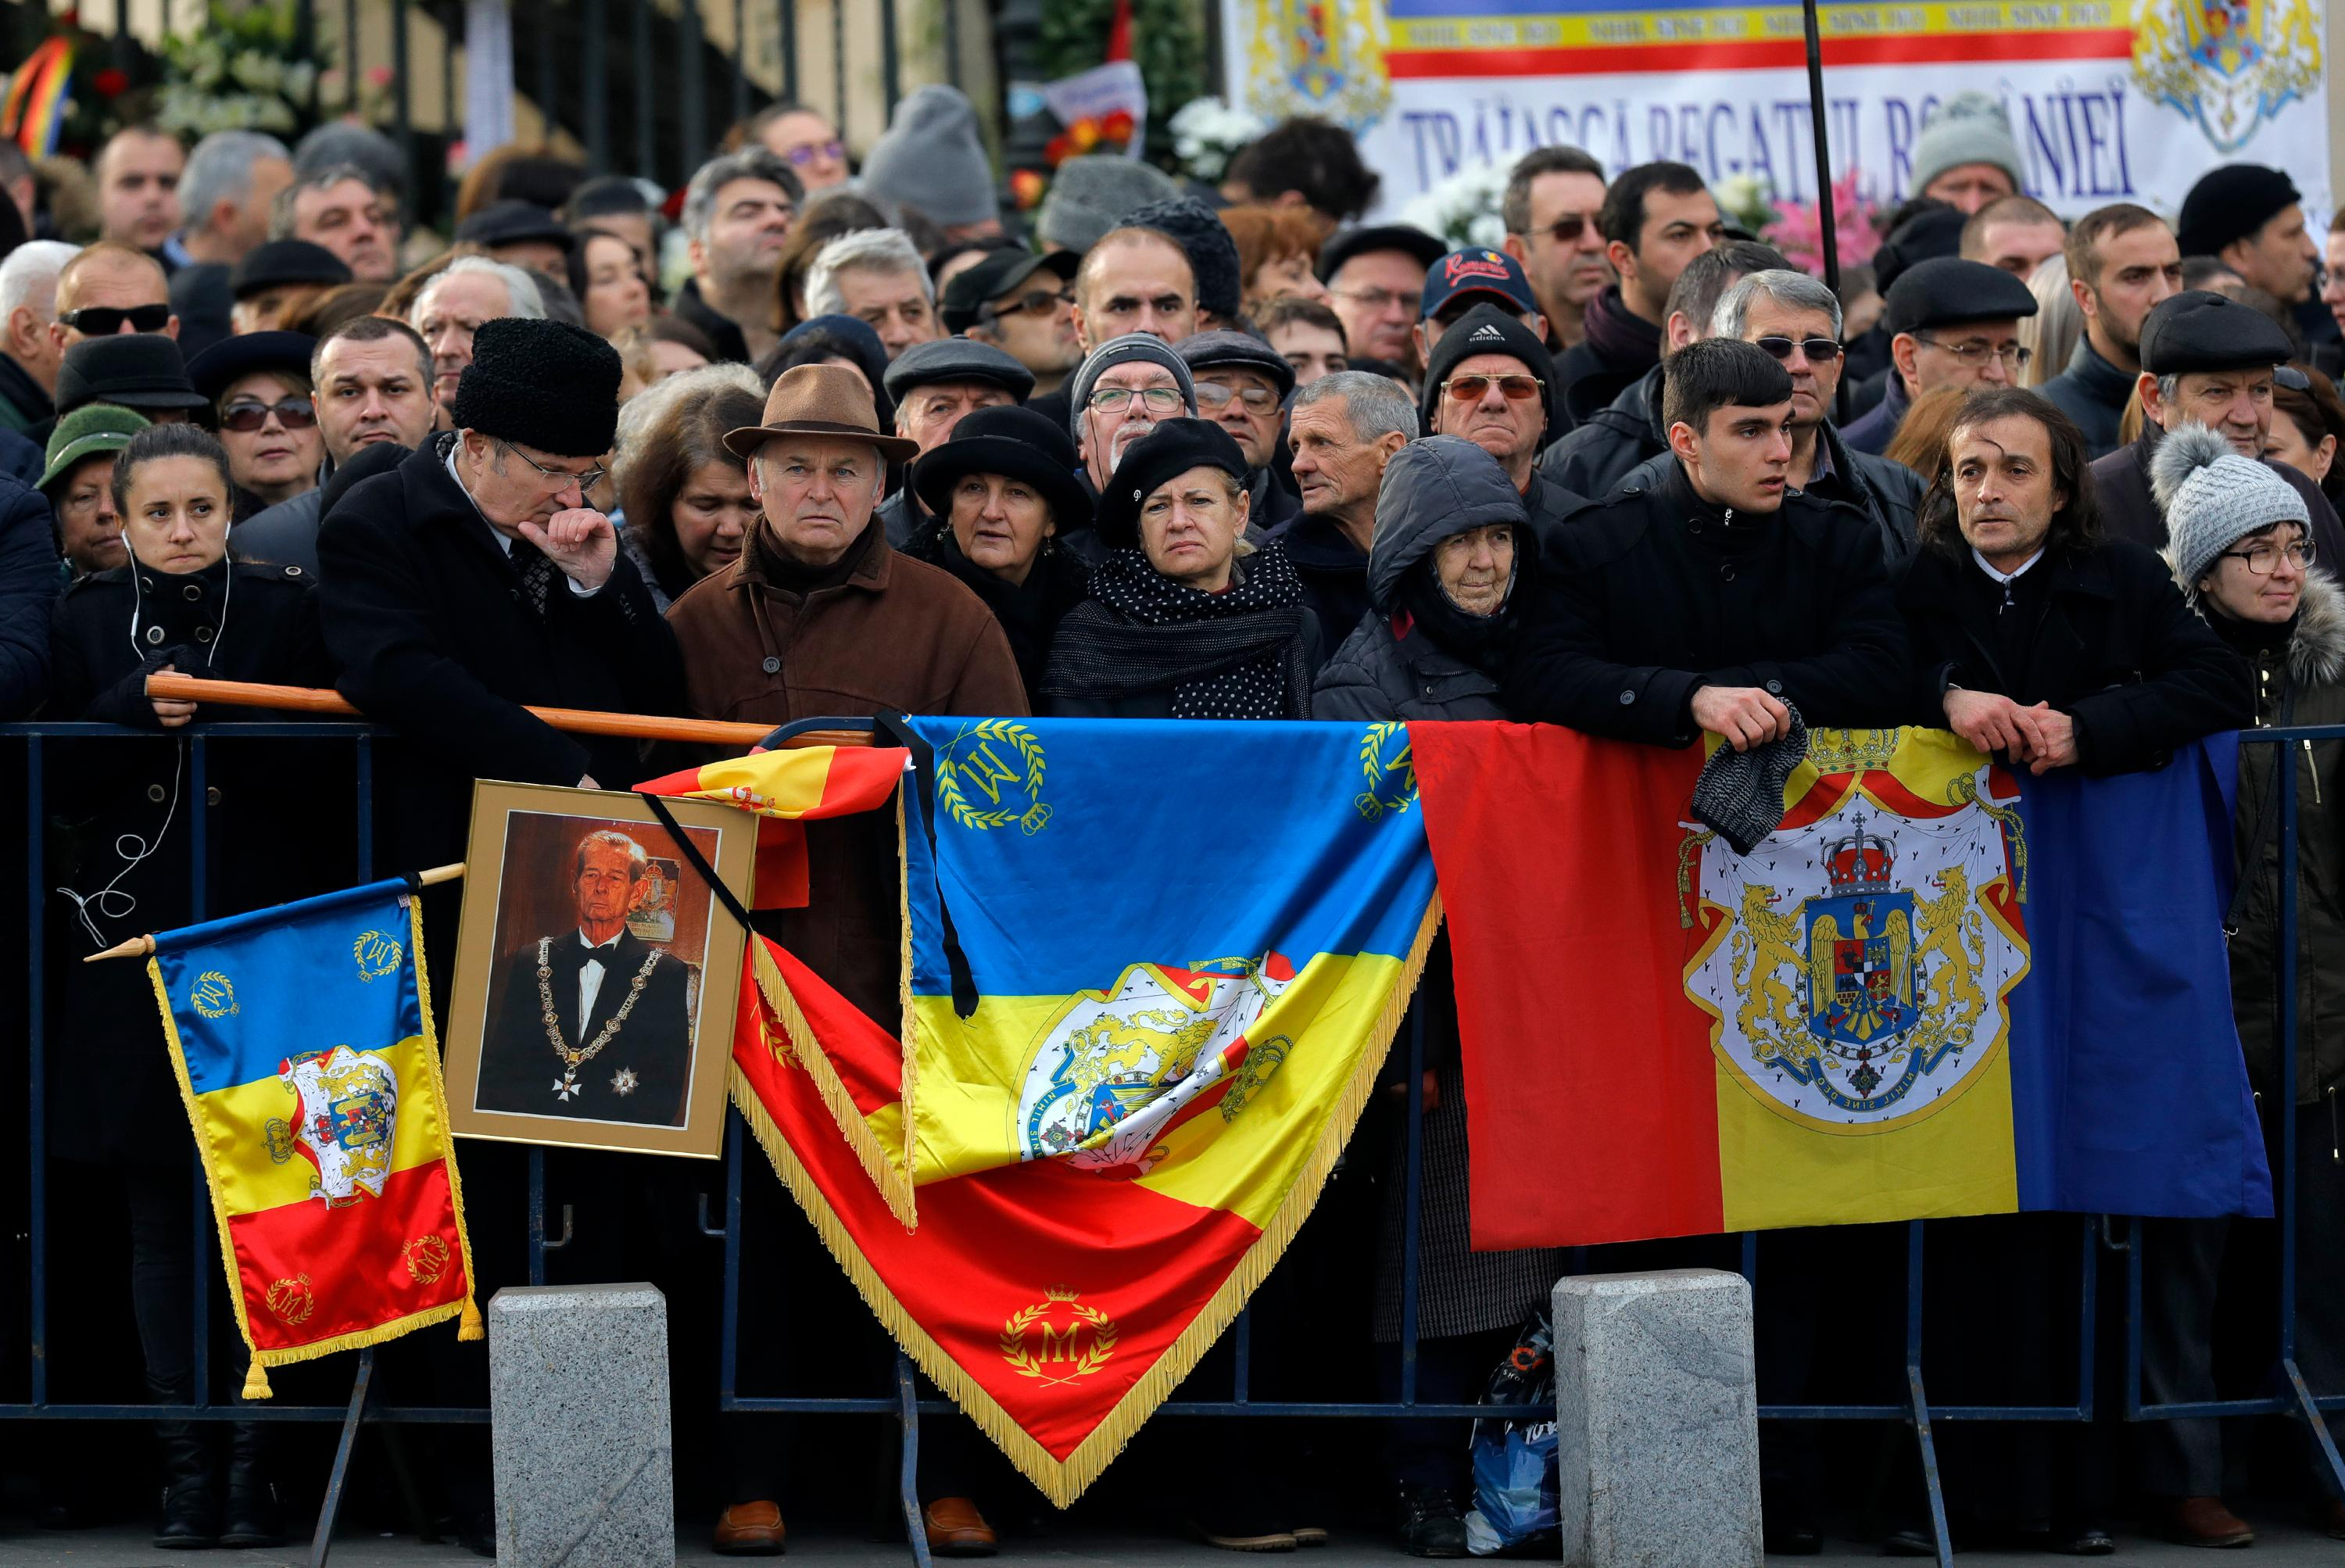 People wait outside the former royal palace to attend Romanian King Michael's funeral ceremony in Bucharest, Romania, Saturday, Dec.16, 2017. Thousands waited in line to pay their respects to Former King Michael, who ruled Romania during WWII, and died on Dec. 5, 2017, aged 96, in Switzerland. (AP Photo/Vadim Ghirda)